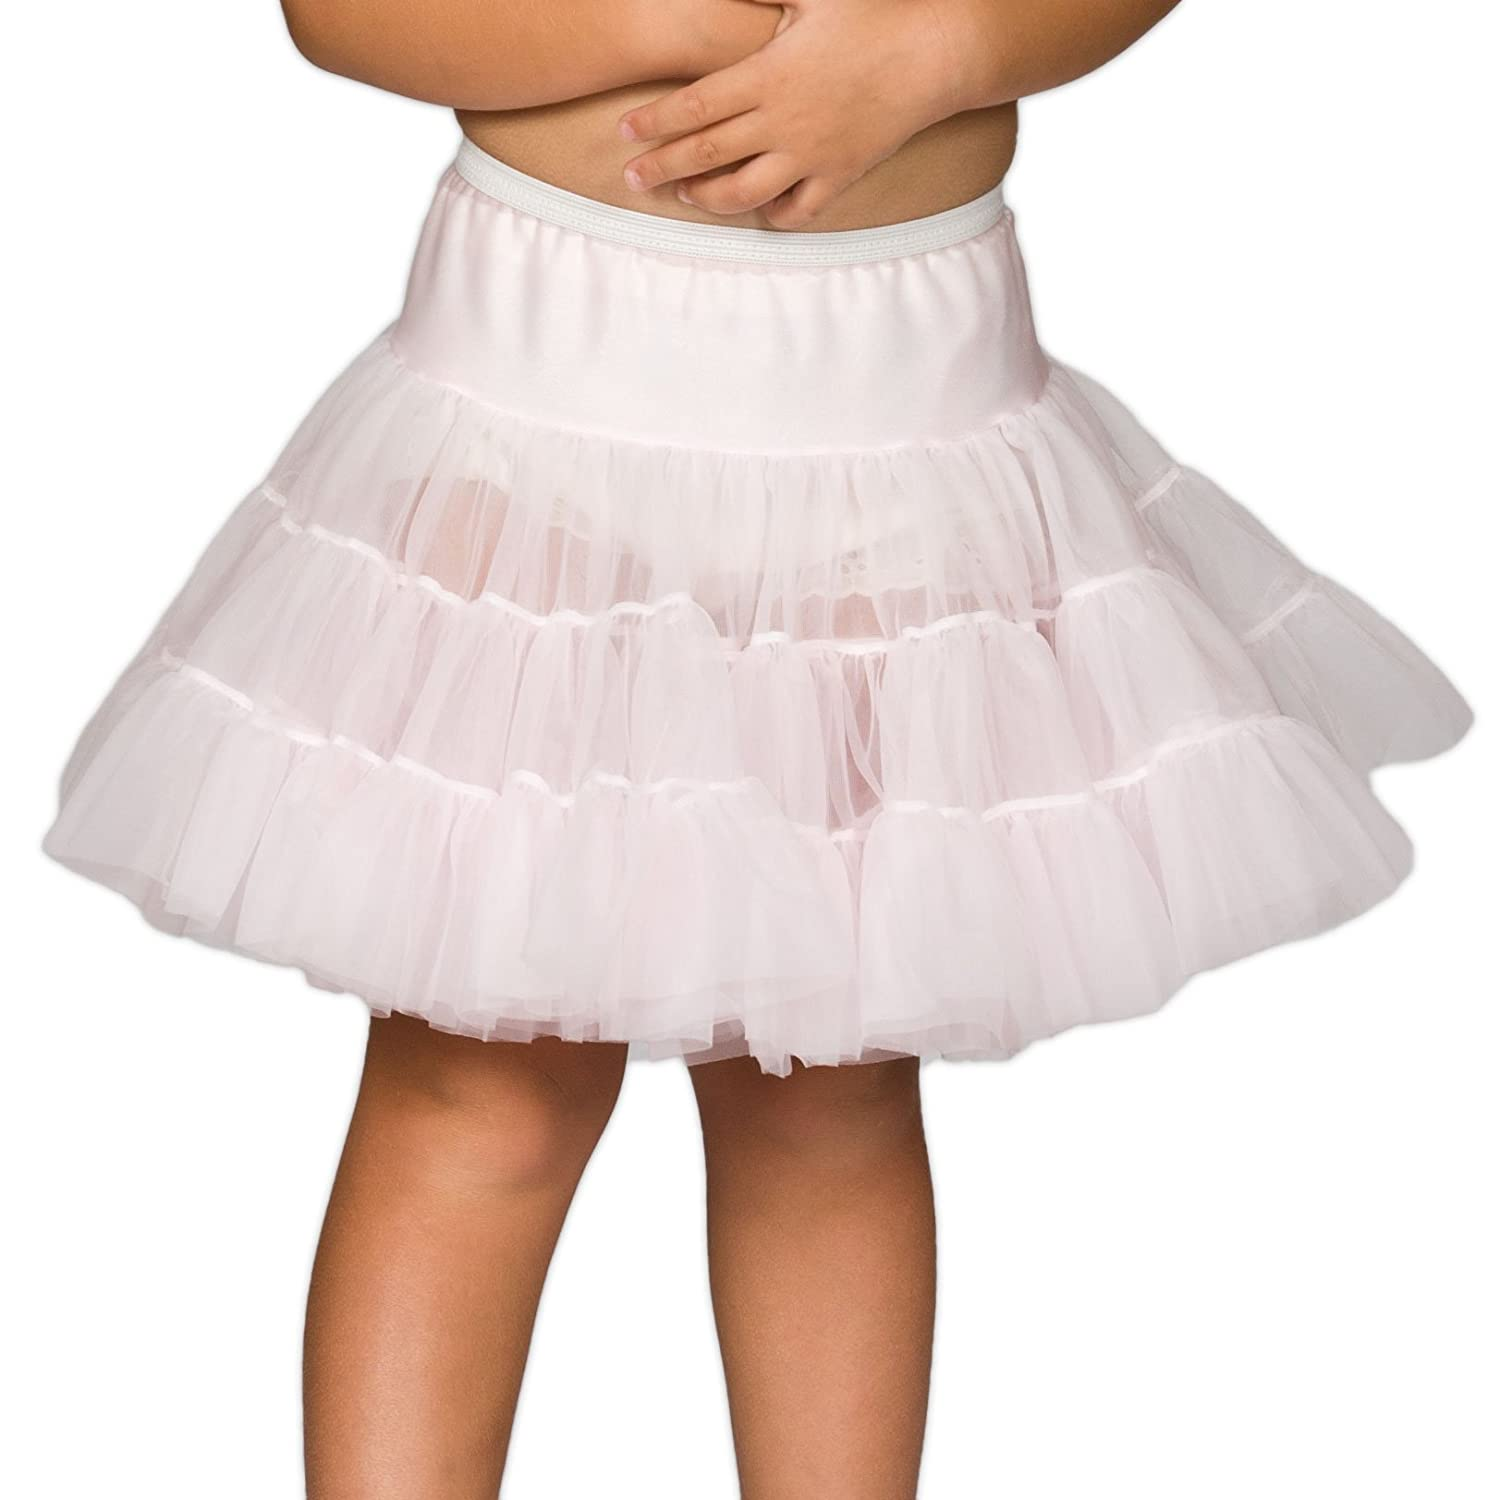 I.C. Collections Little Girls Pink Bouffant Half Slip Petticoat, 3T New ICM 000500-ALL-B